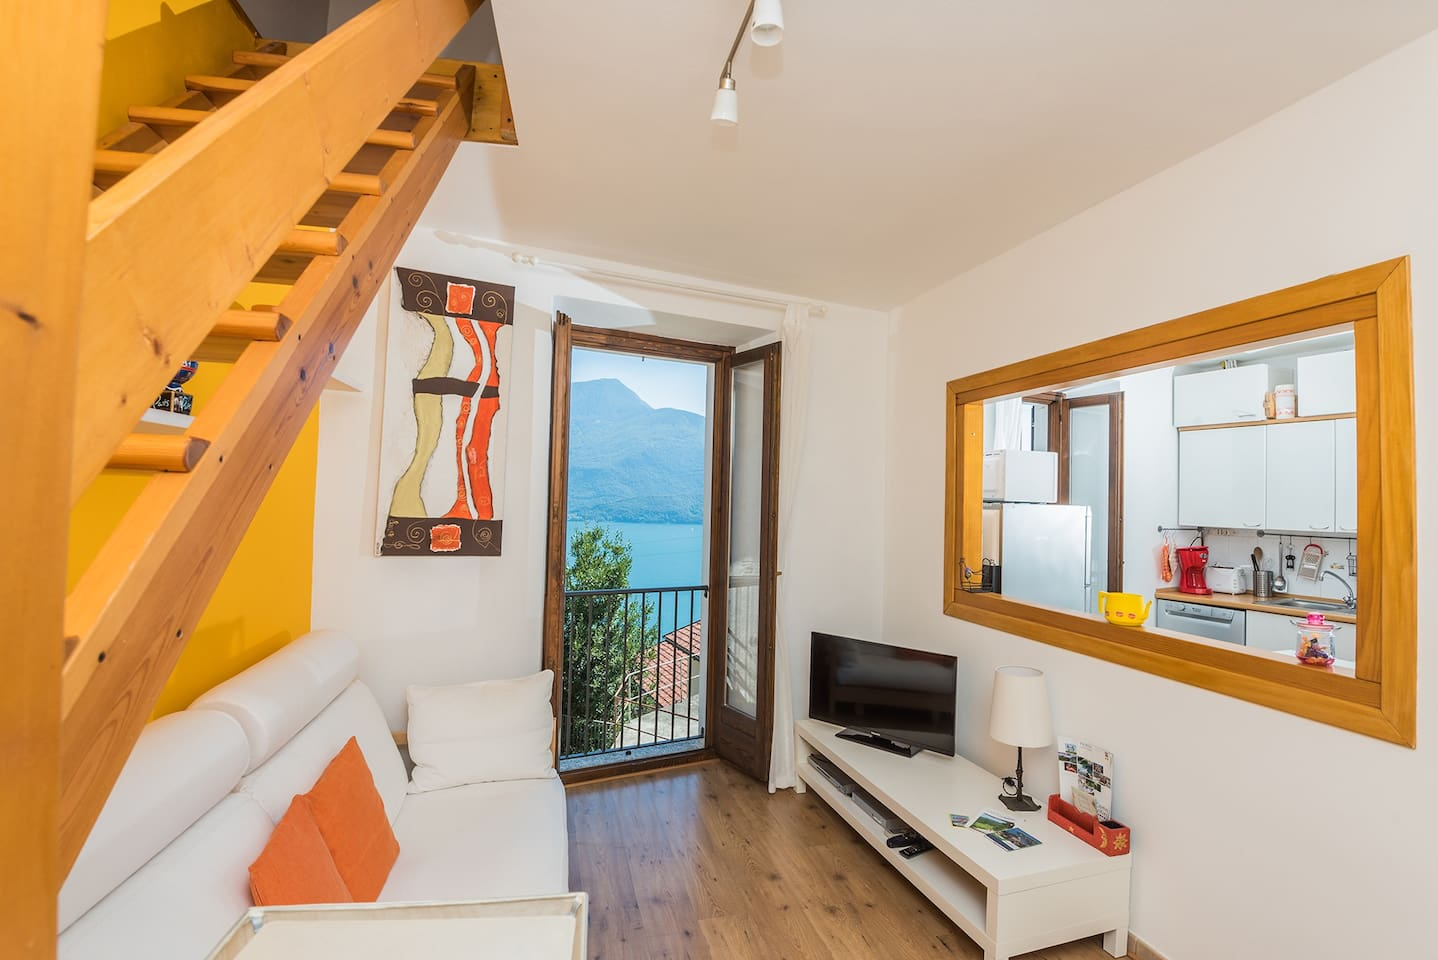 The bright living room with superb view over Lake Como